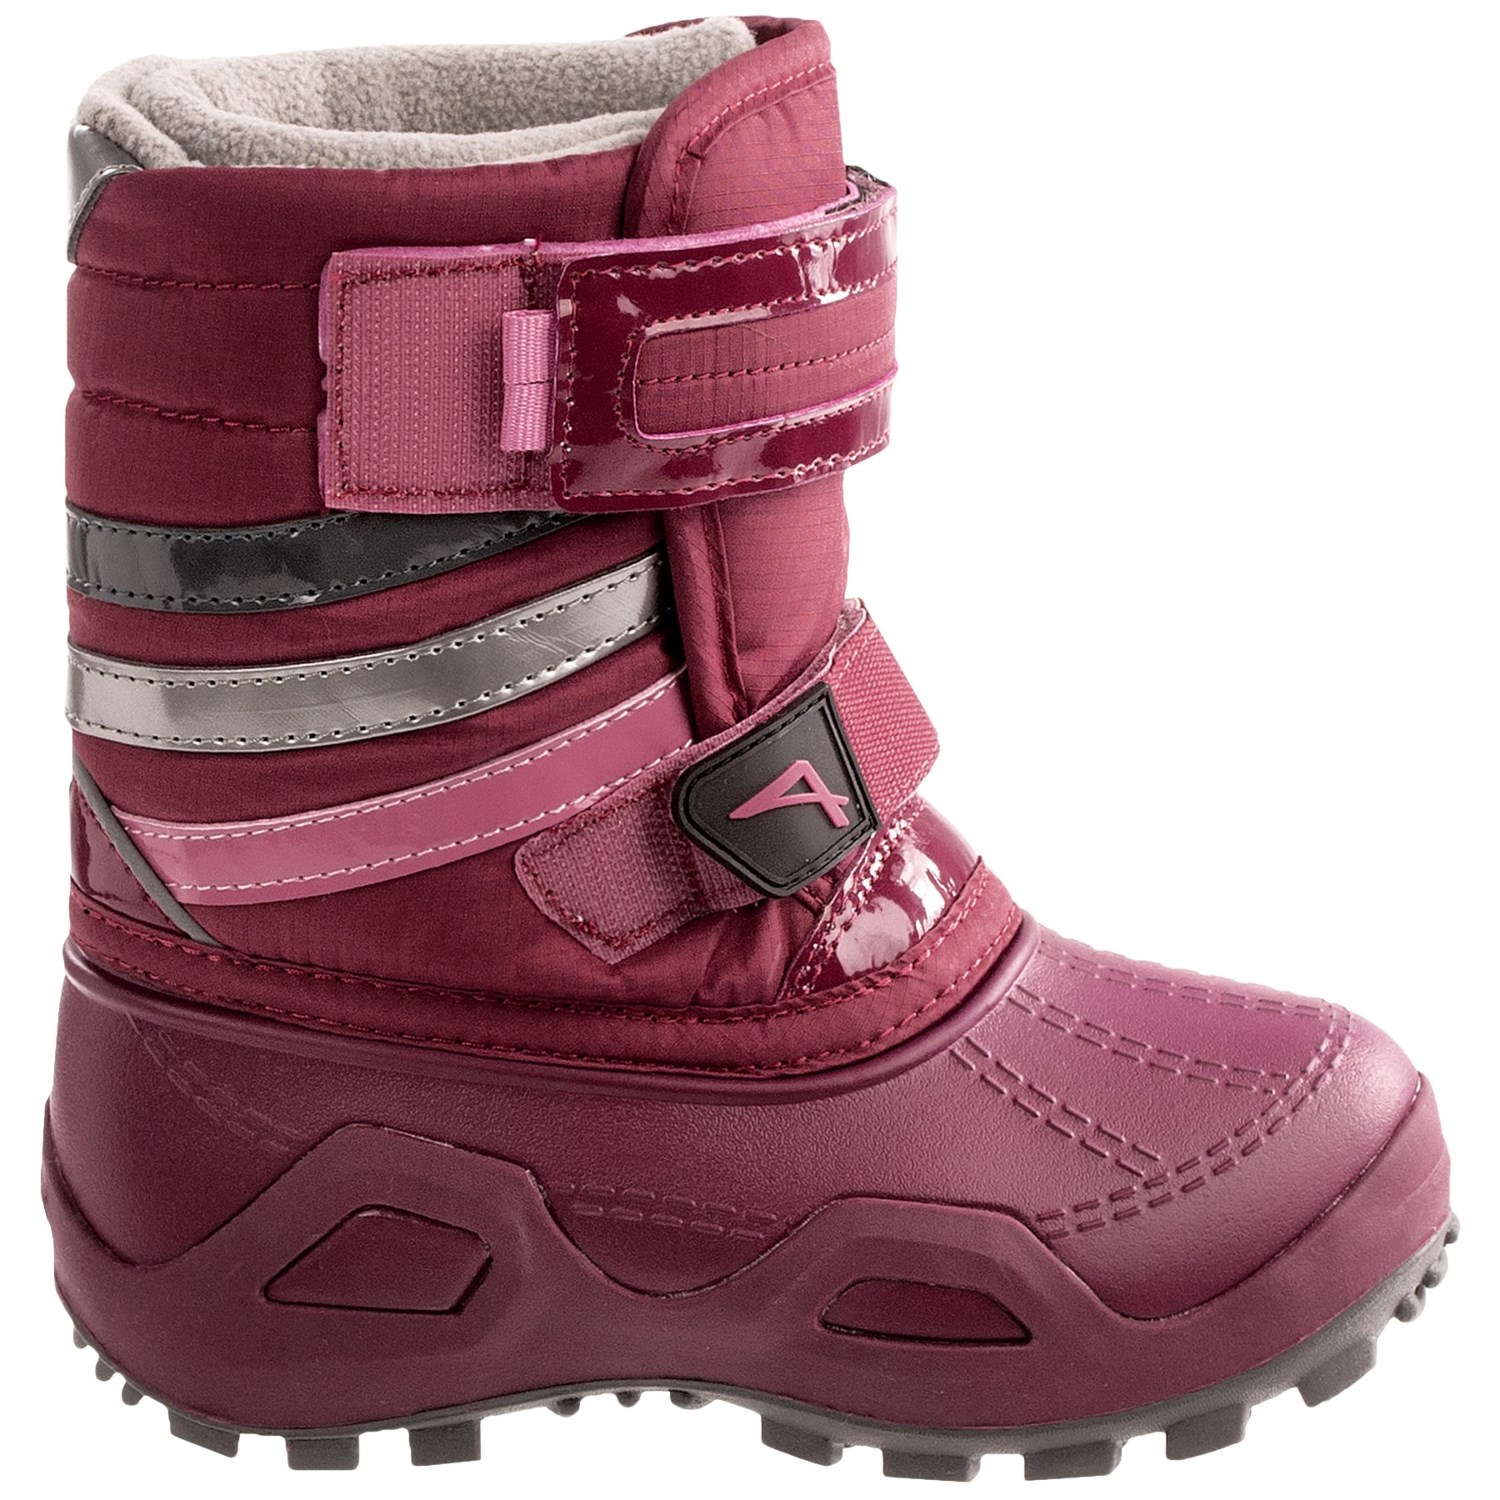 Acton DribbleSnow Boots (For Kids) - Save 35%